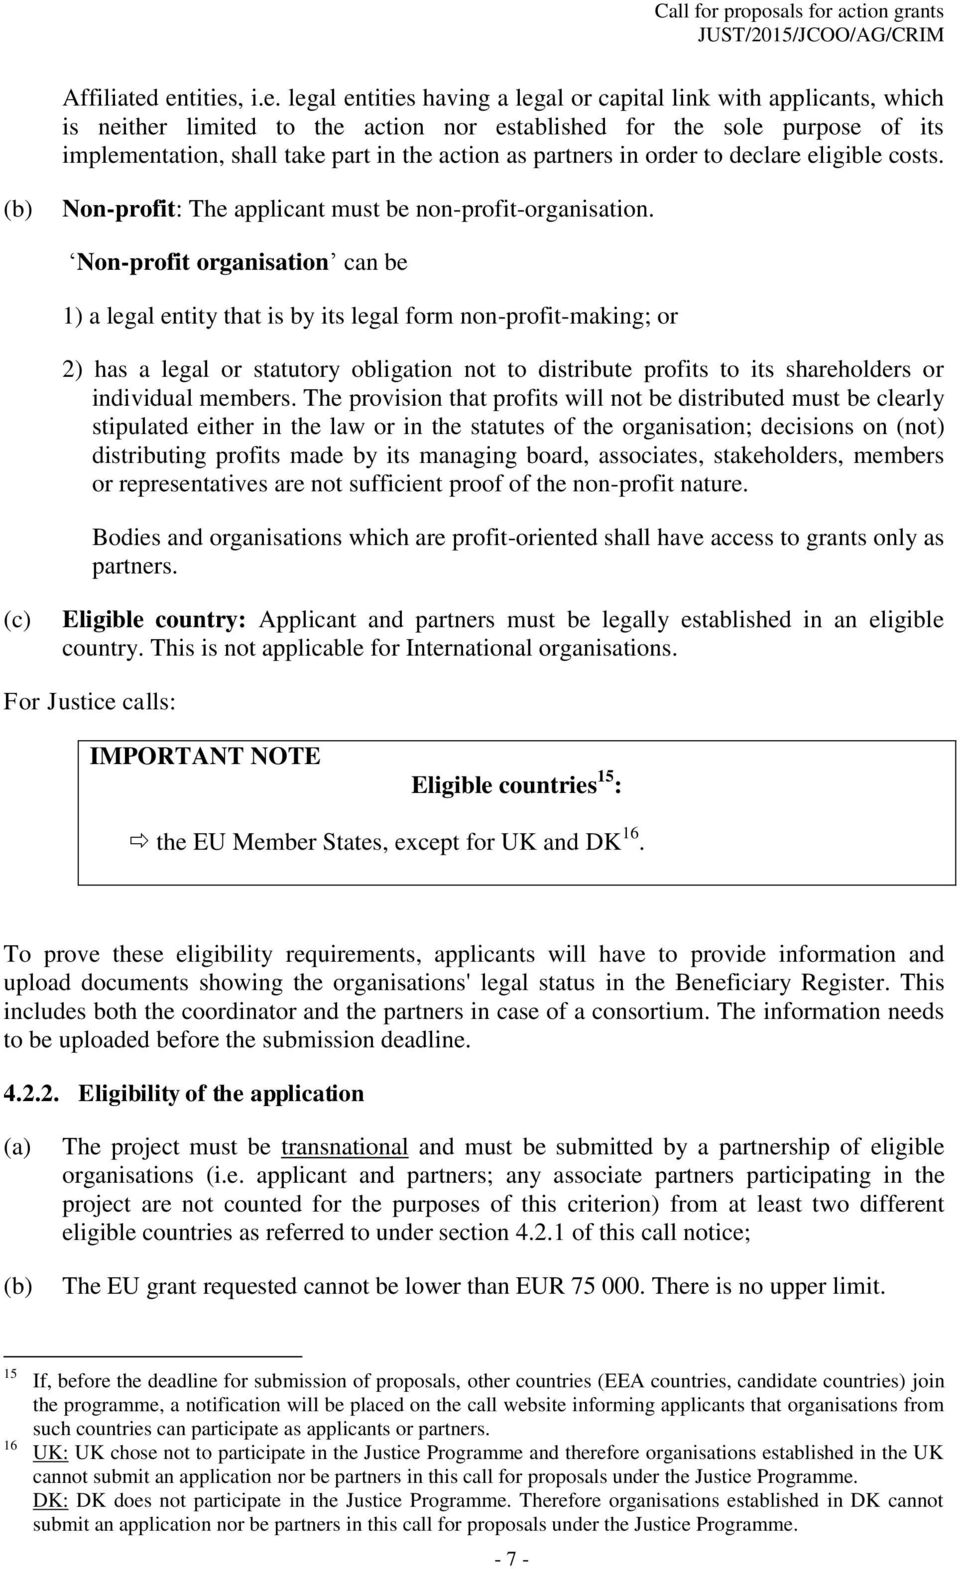 action as partners in order to declare eligible costs. (b) Non-profit: The applicant must be non-profit-organisation.